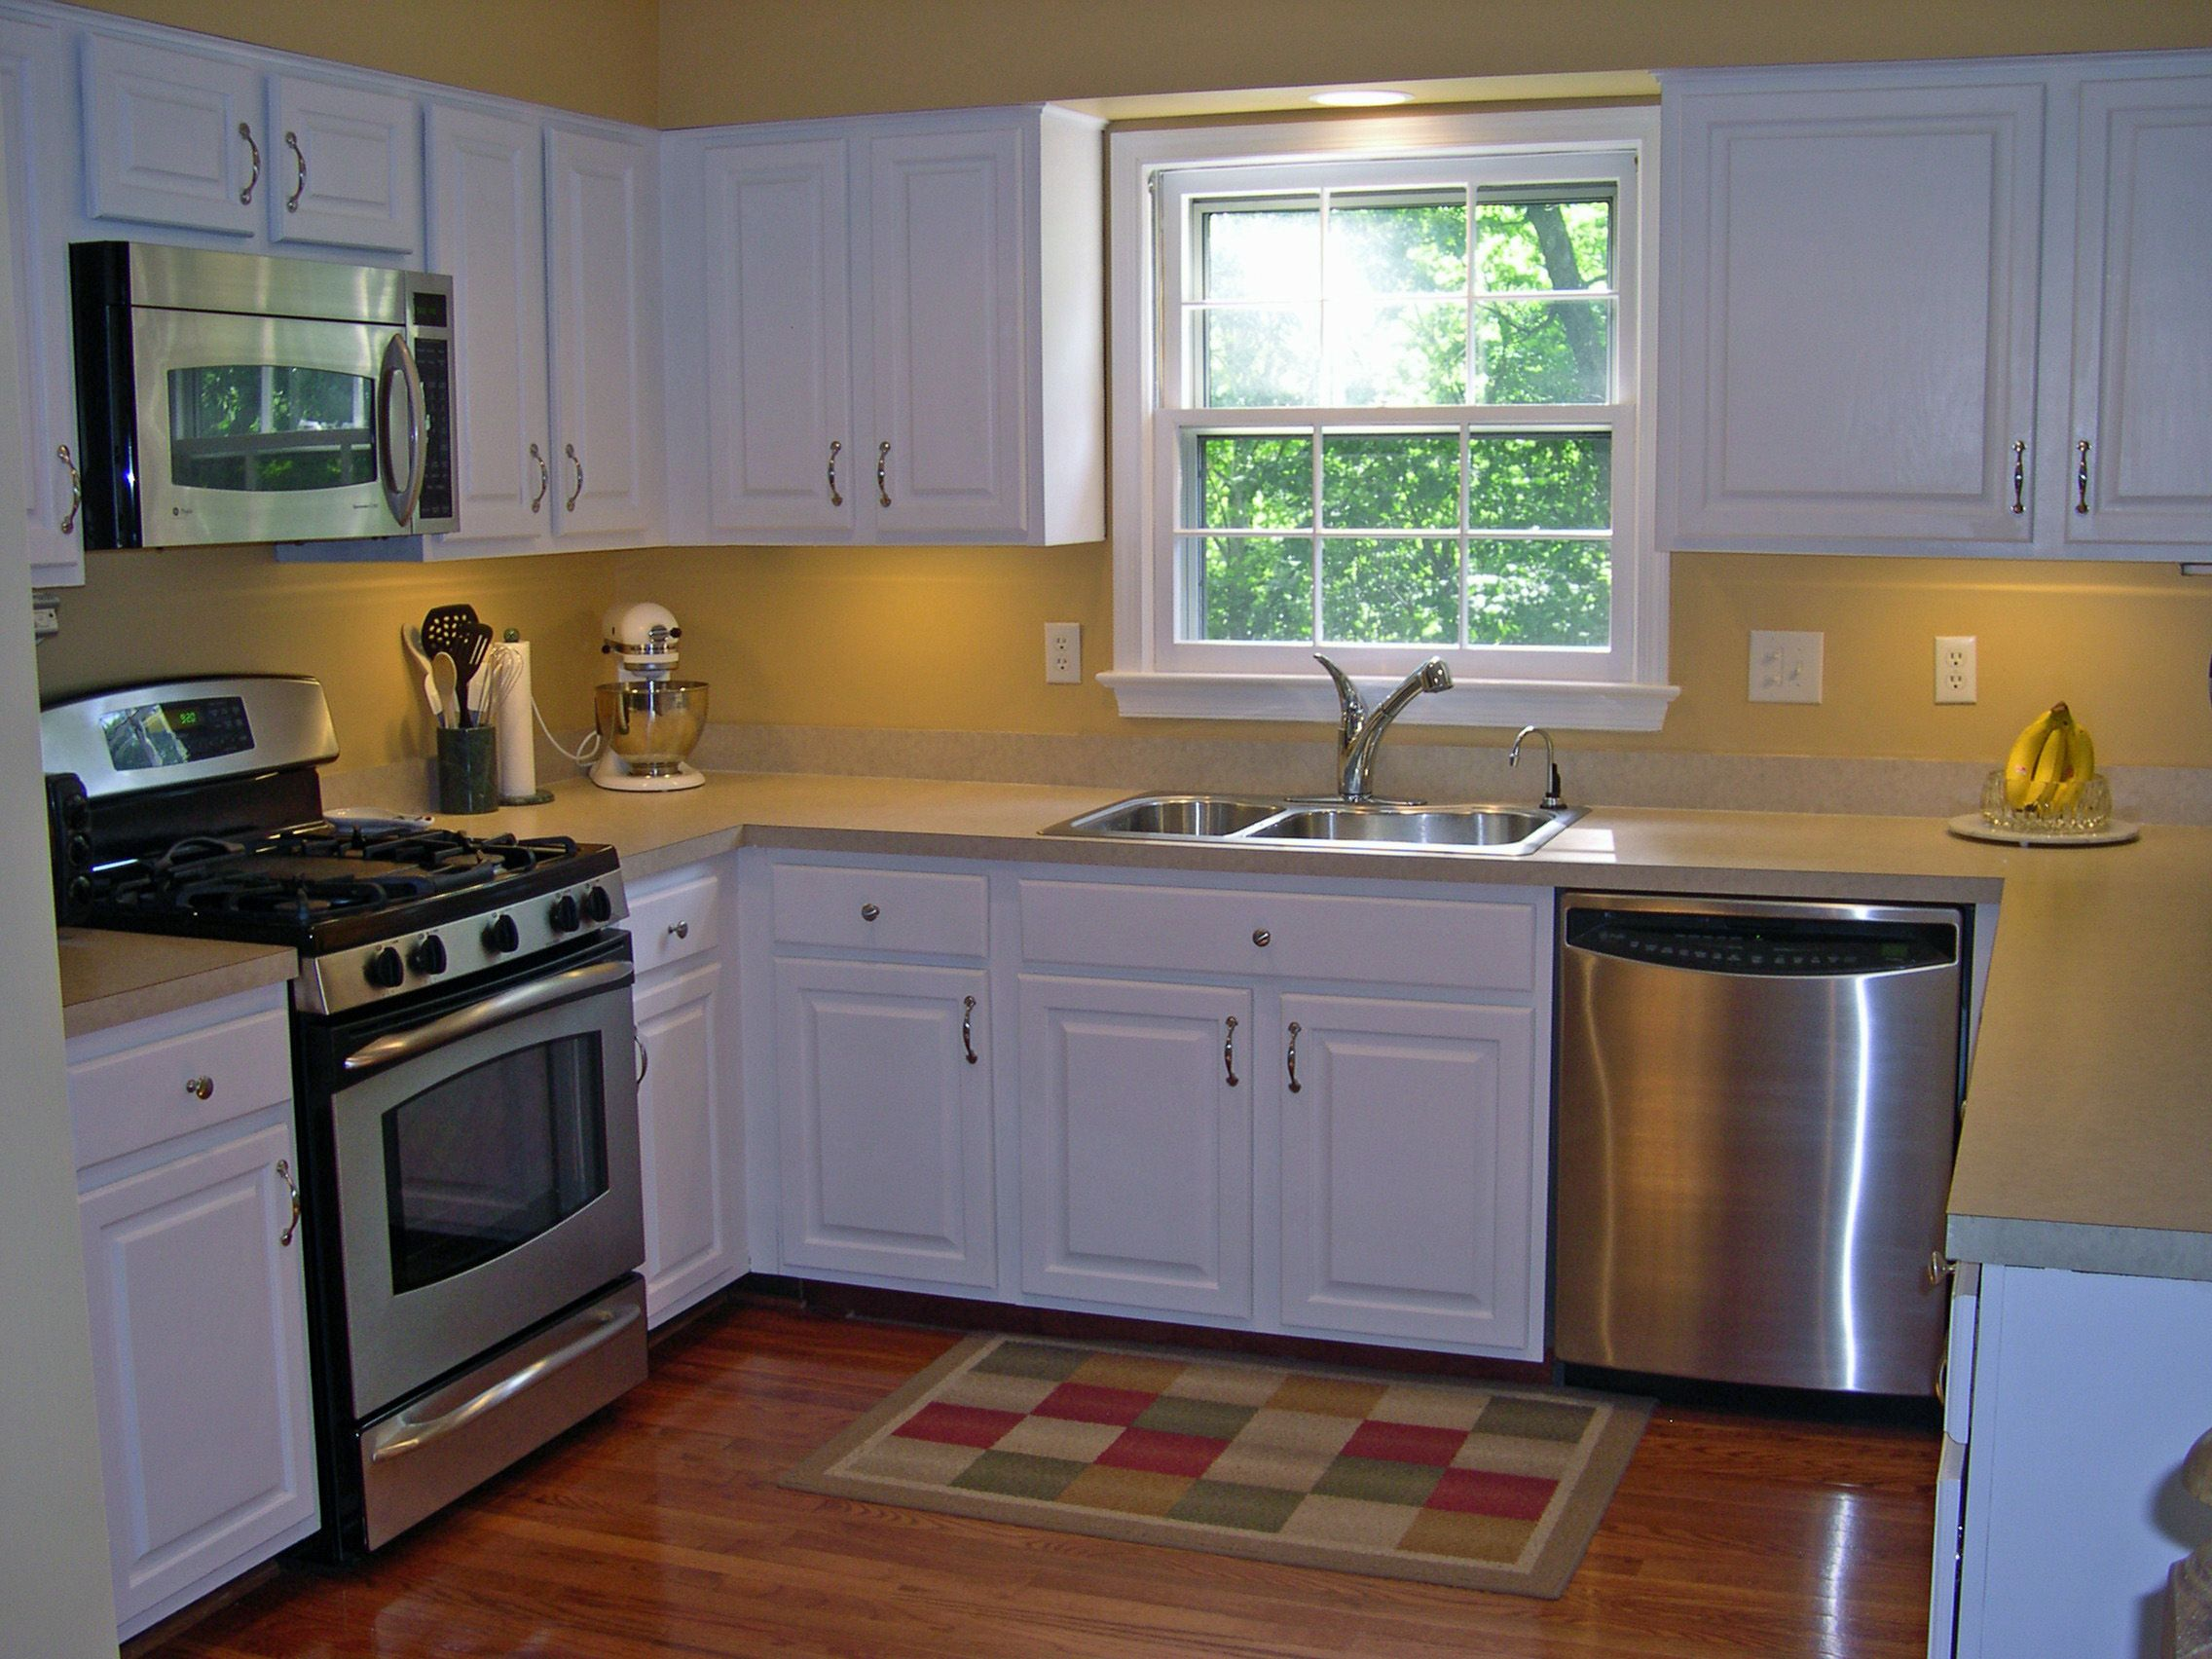 Small Kitchen Renovation Ideas small kitchen remodeling ideas | small kitchen remodel ideas